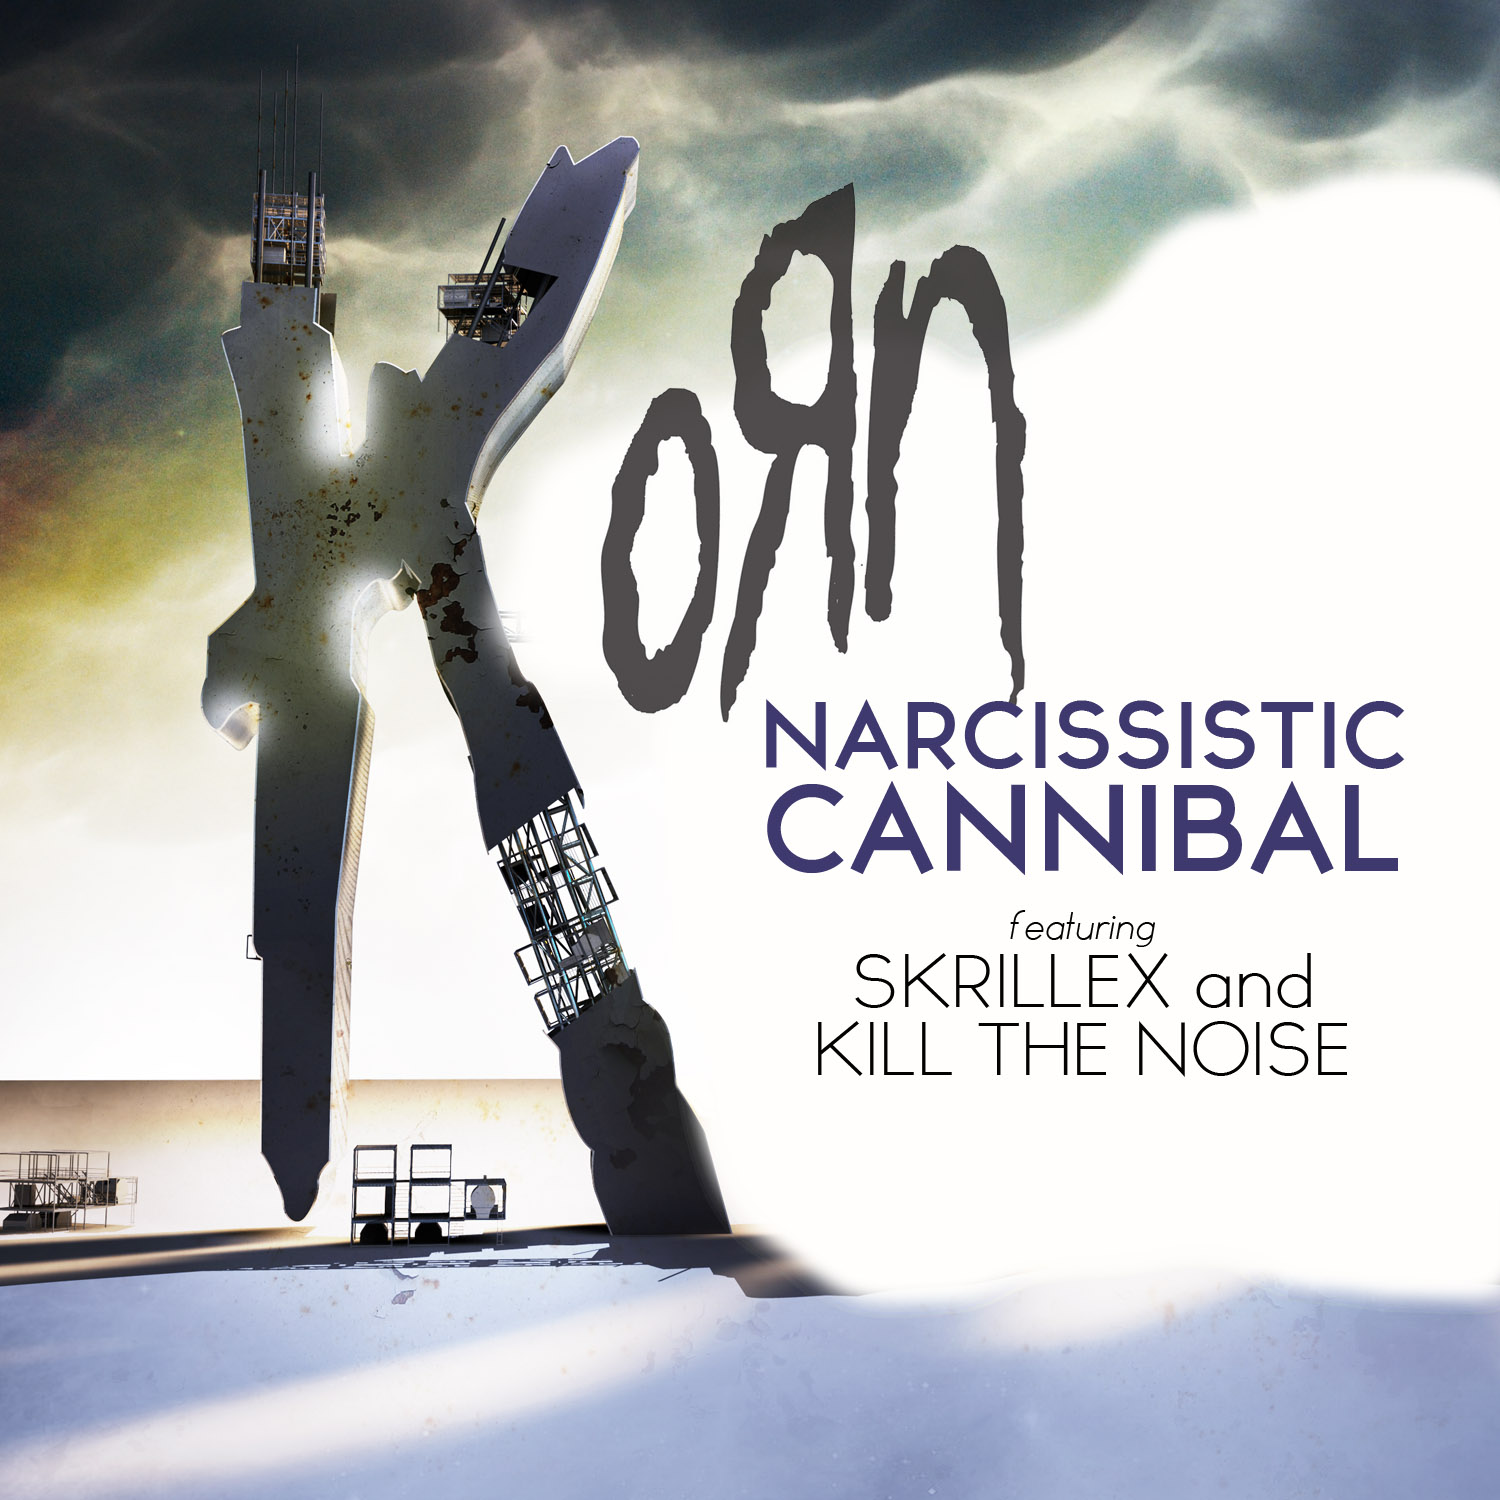 Korn &#8211; Narcissistic Cannibal (feat. Skrillex &amp; Kill The Noise)